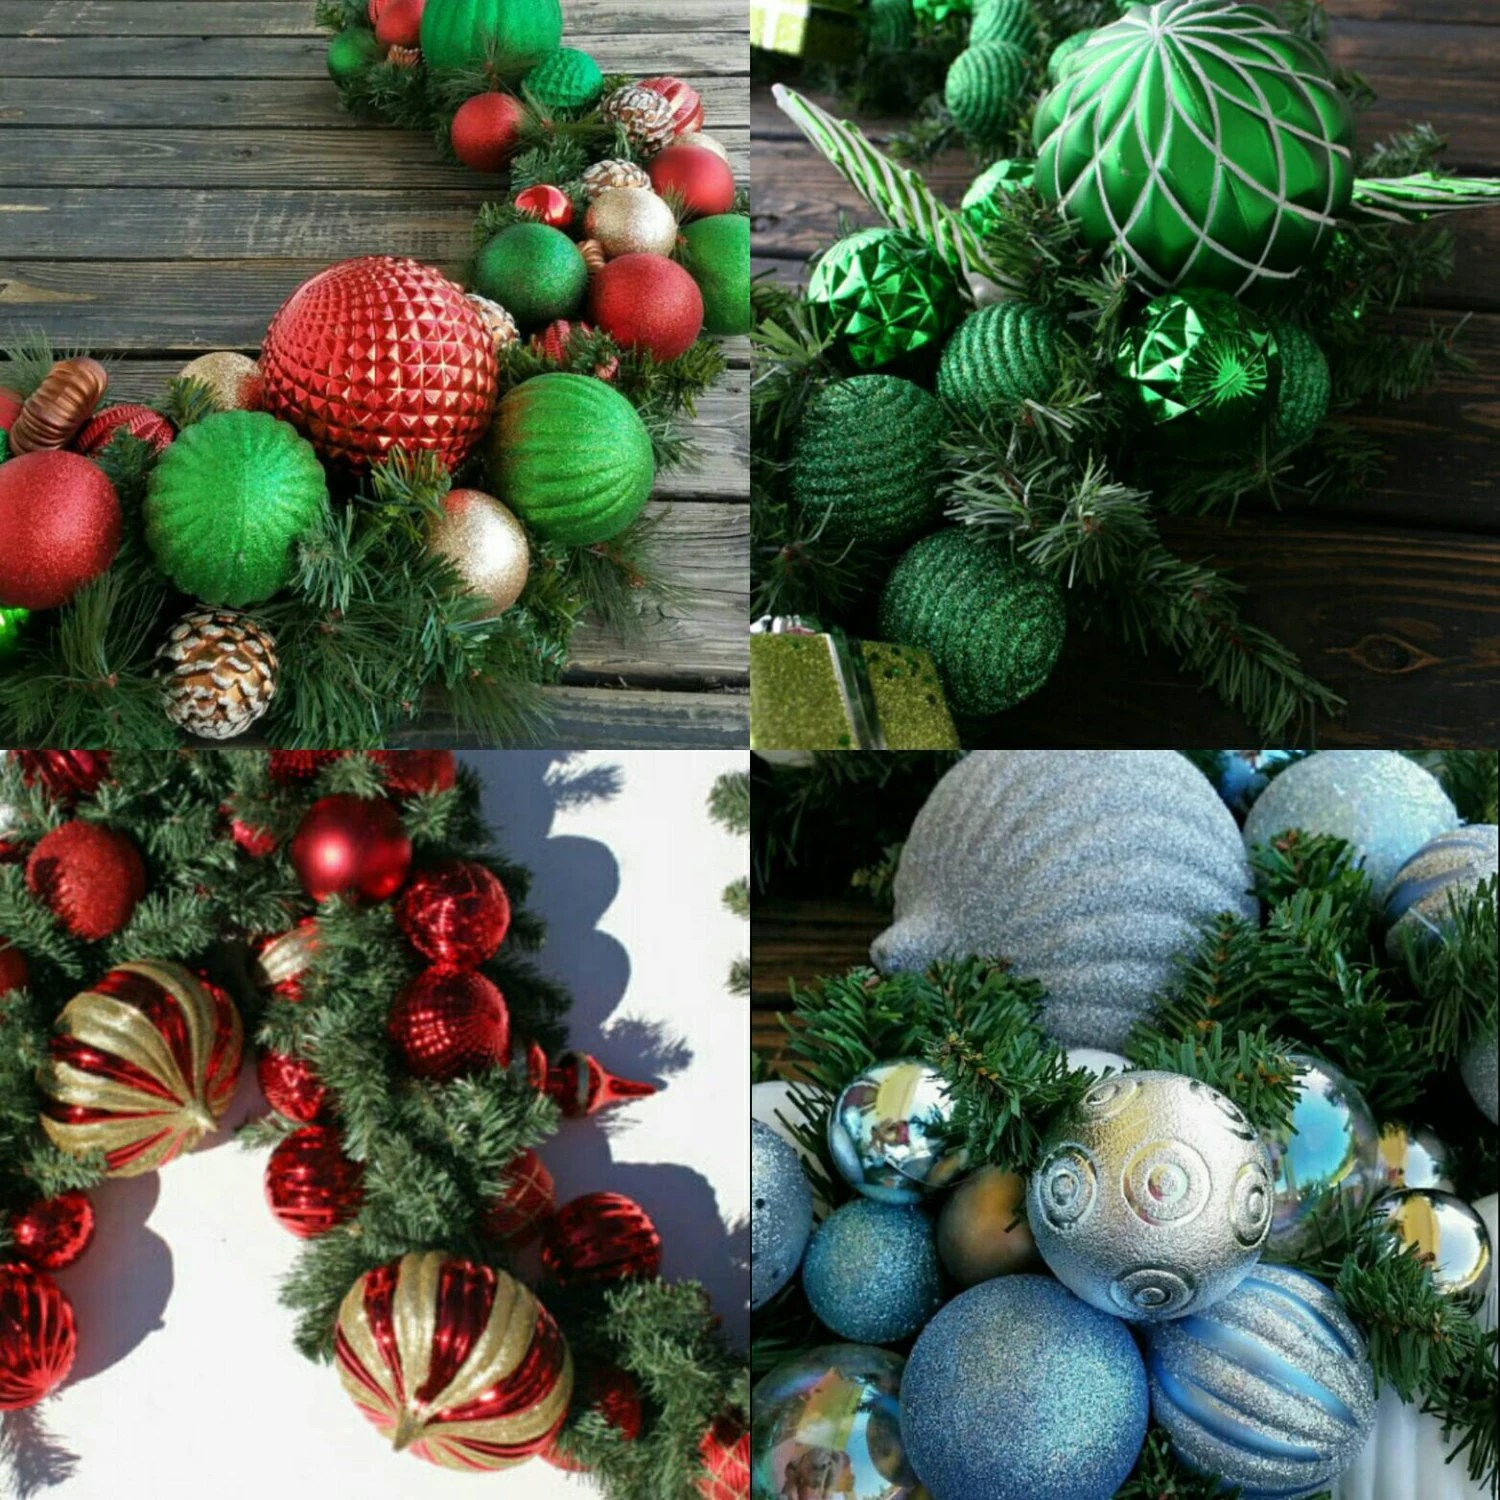 6 Ft Fireplace Mantel Christmas Garland Holiday Garland Mantel Garland Fireplace